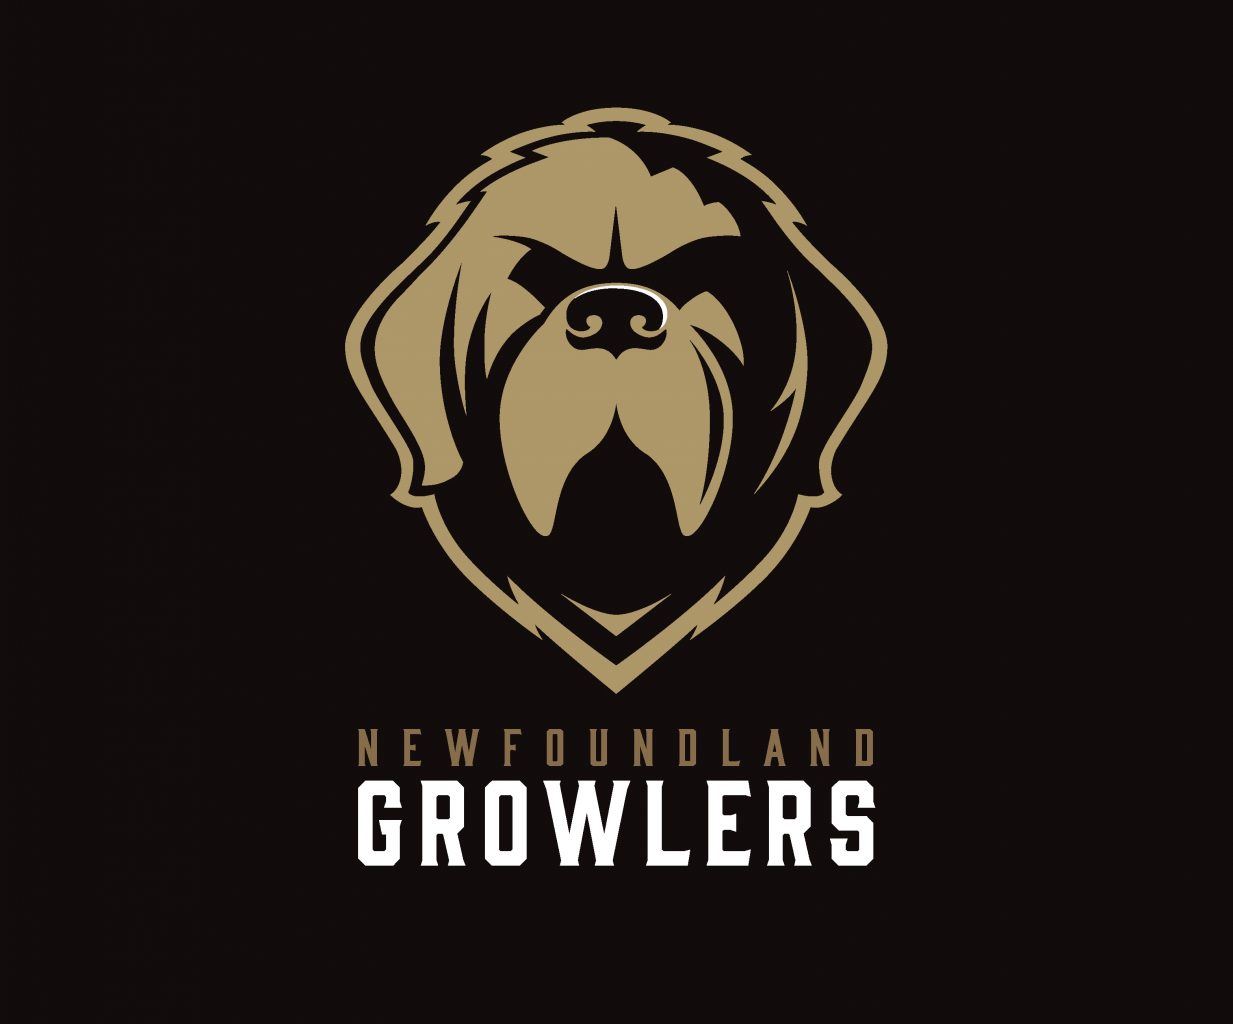 NL GROWLERS VS. ADIRONDACK THUNDER